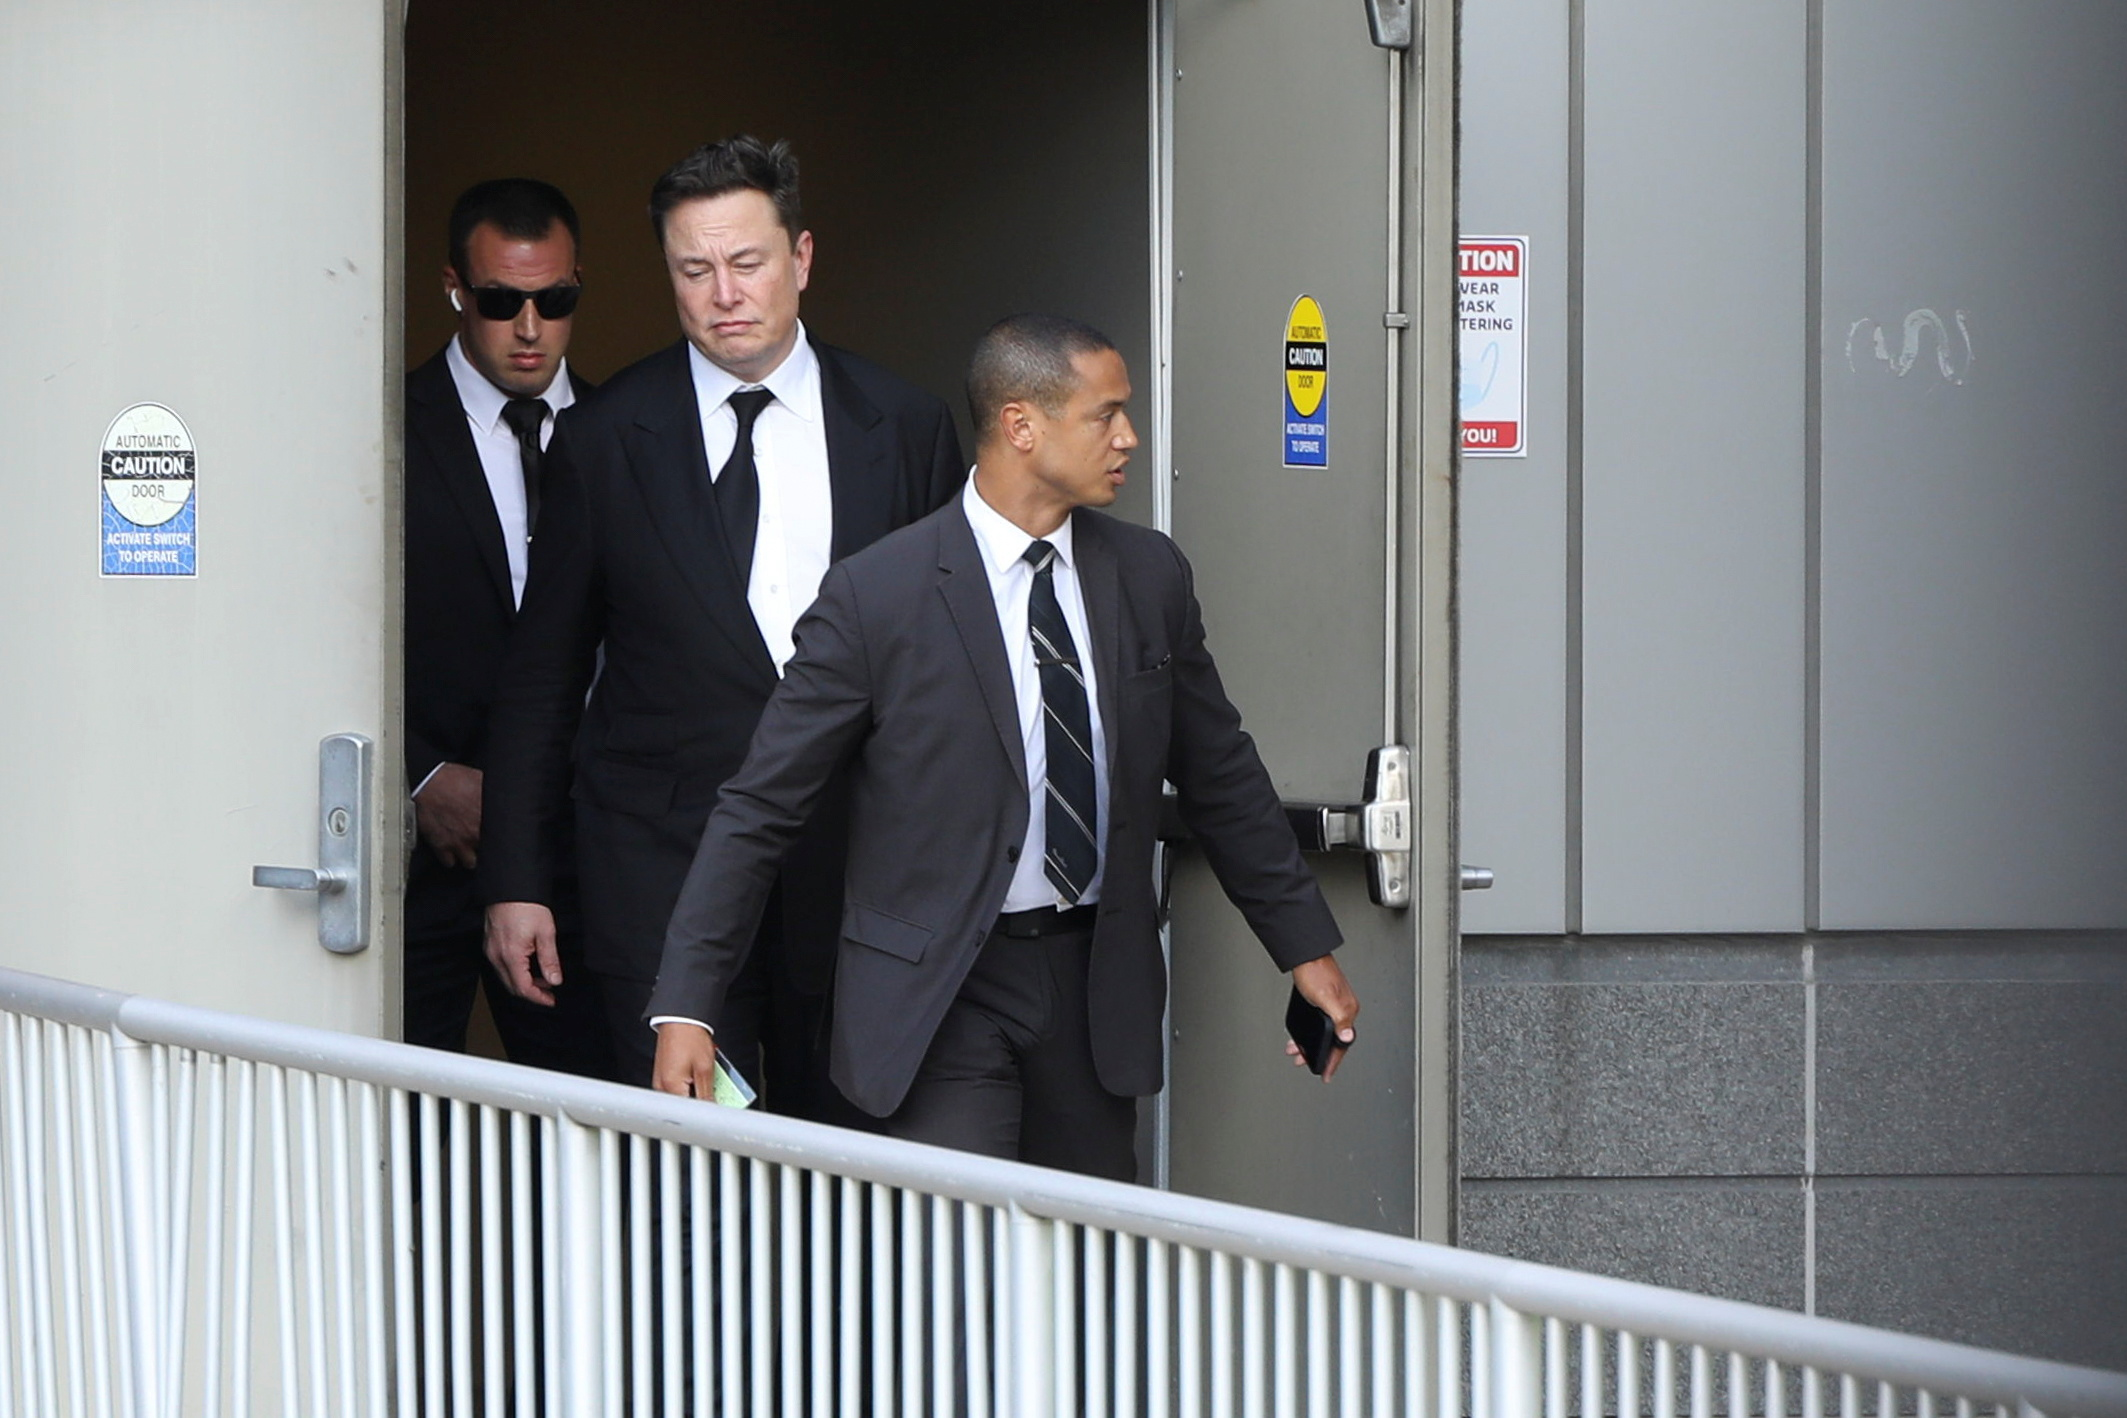 Tesla CEO Elon Musk departs the Williams Justice Center after taking the stand to defend Tesla Inc's 2016 deal for SolarCity in a case before the Delaware Court of Chancery in Wilmington, Delaware, U.S. July 12, 2021. REUTERS/Hannah Beier